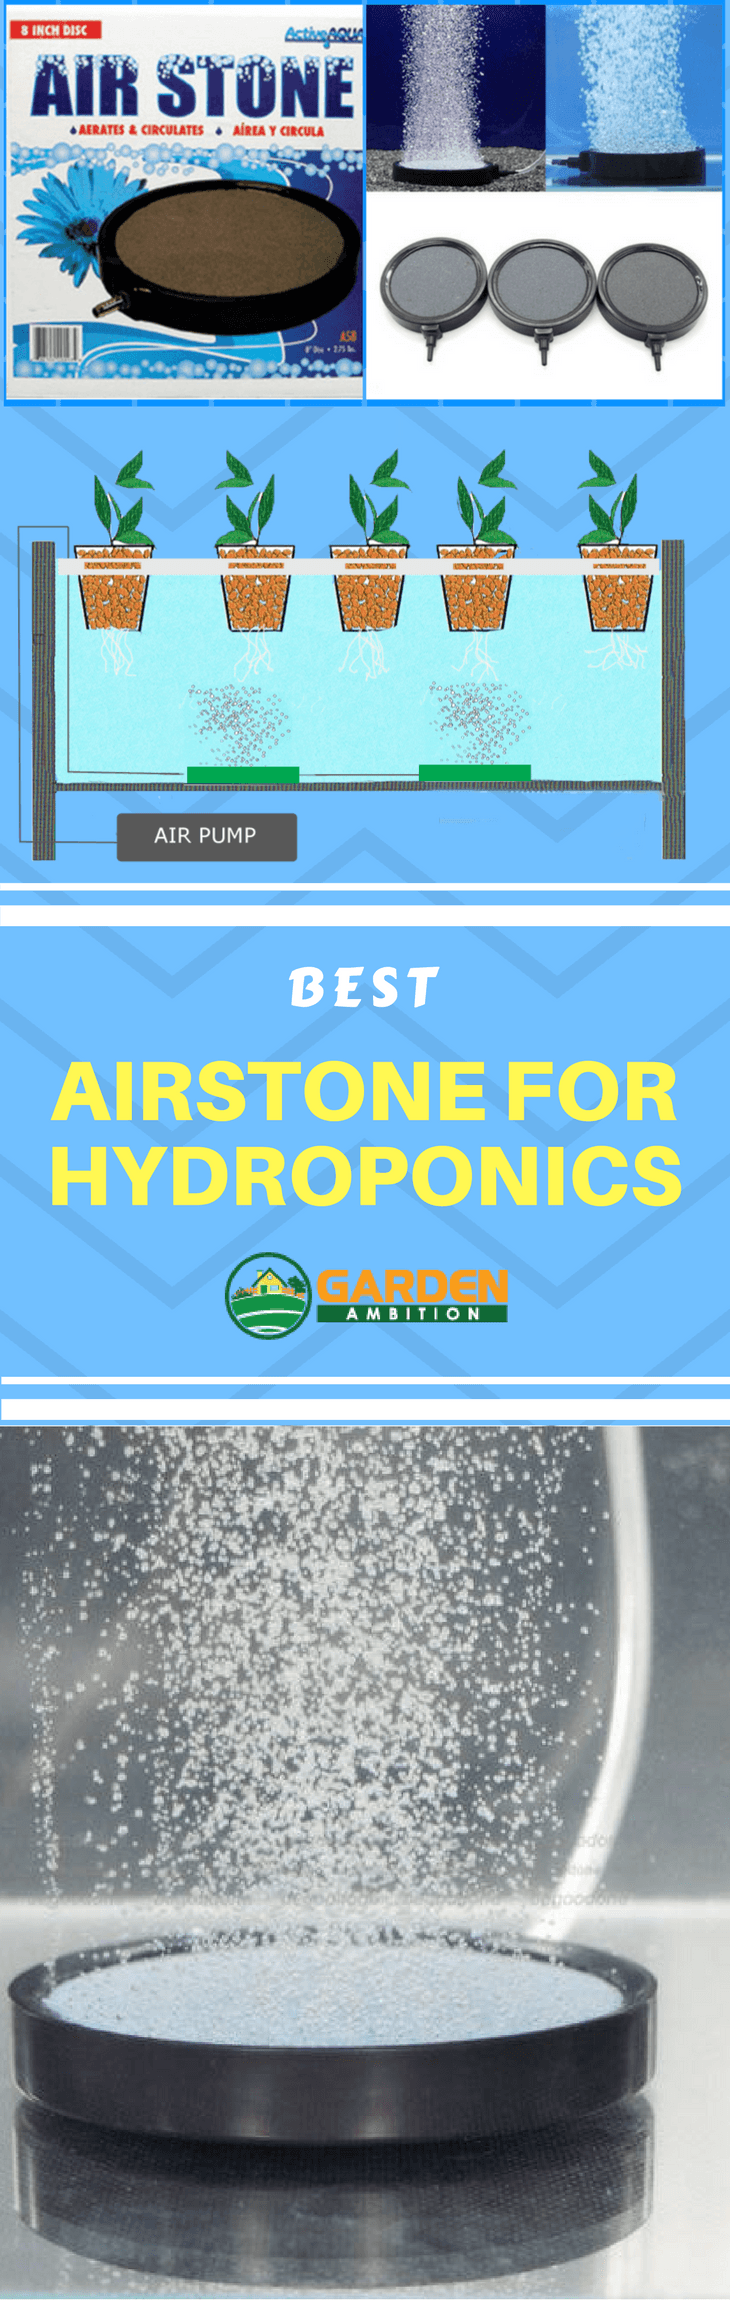 best airstone for hydroponics infographic